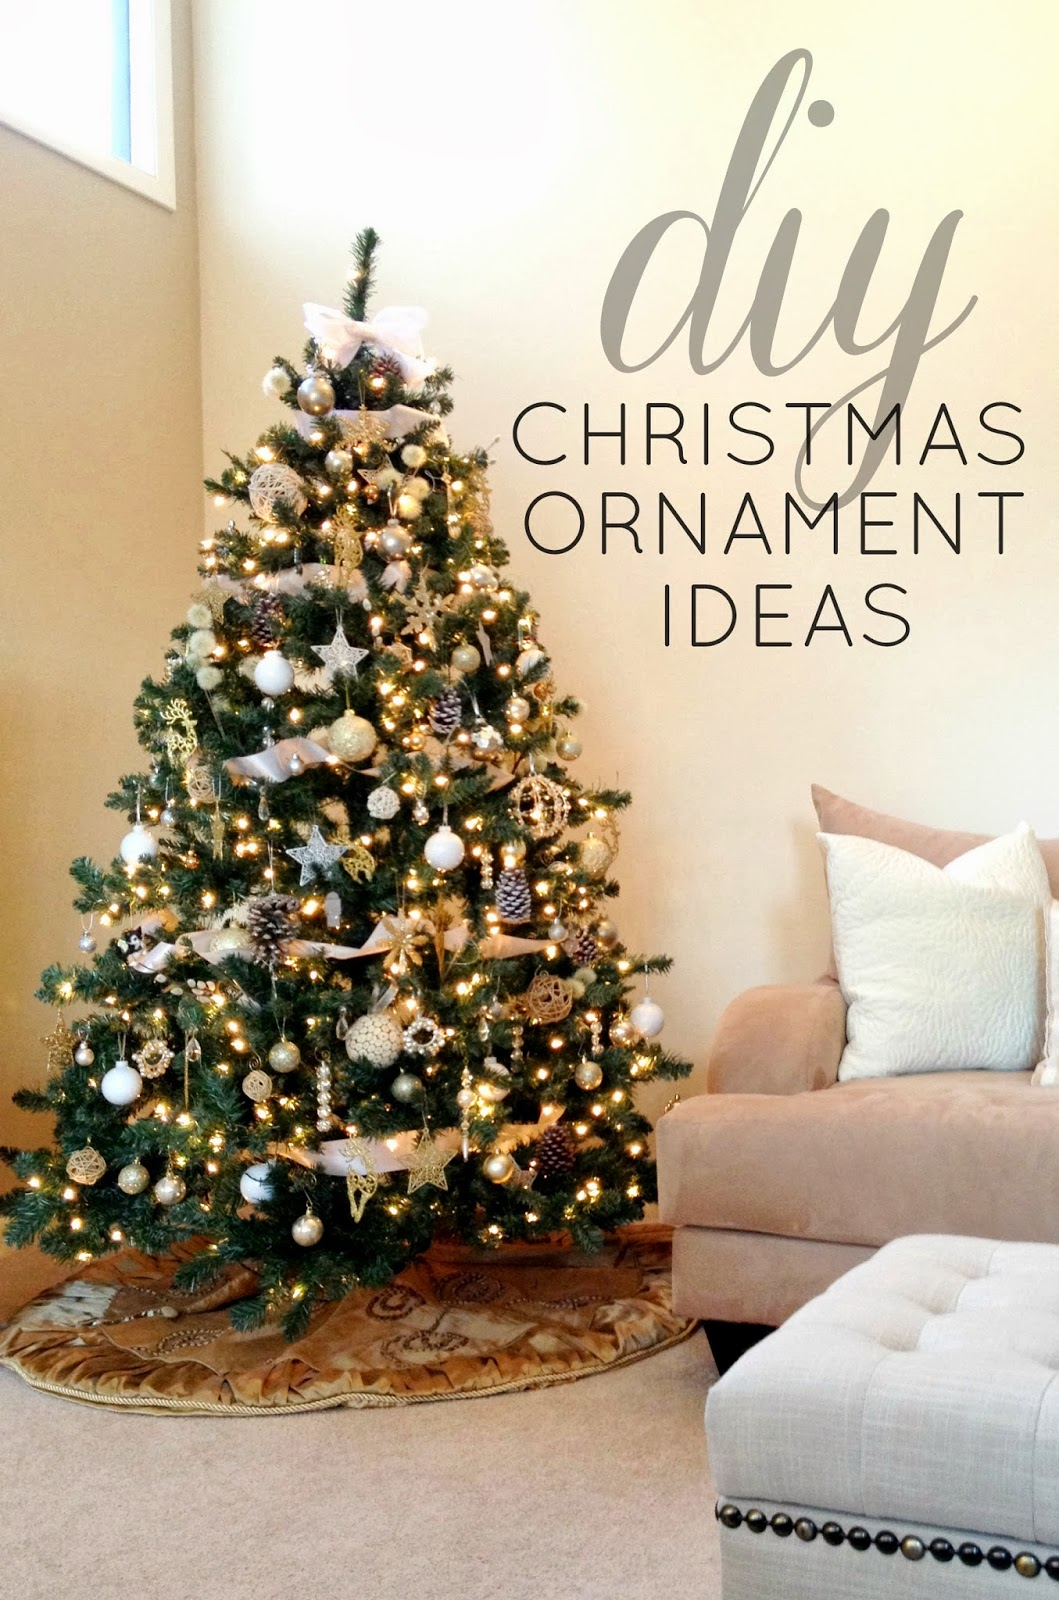 Christmas decorations ideas trees : Livelovediy diy christmas ornaments ideas